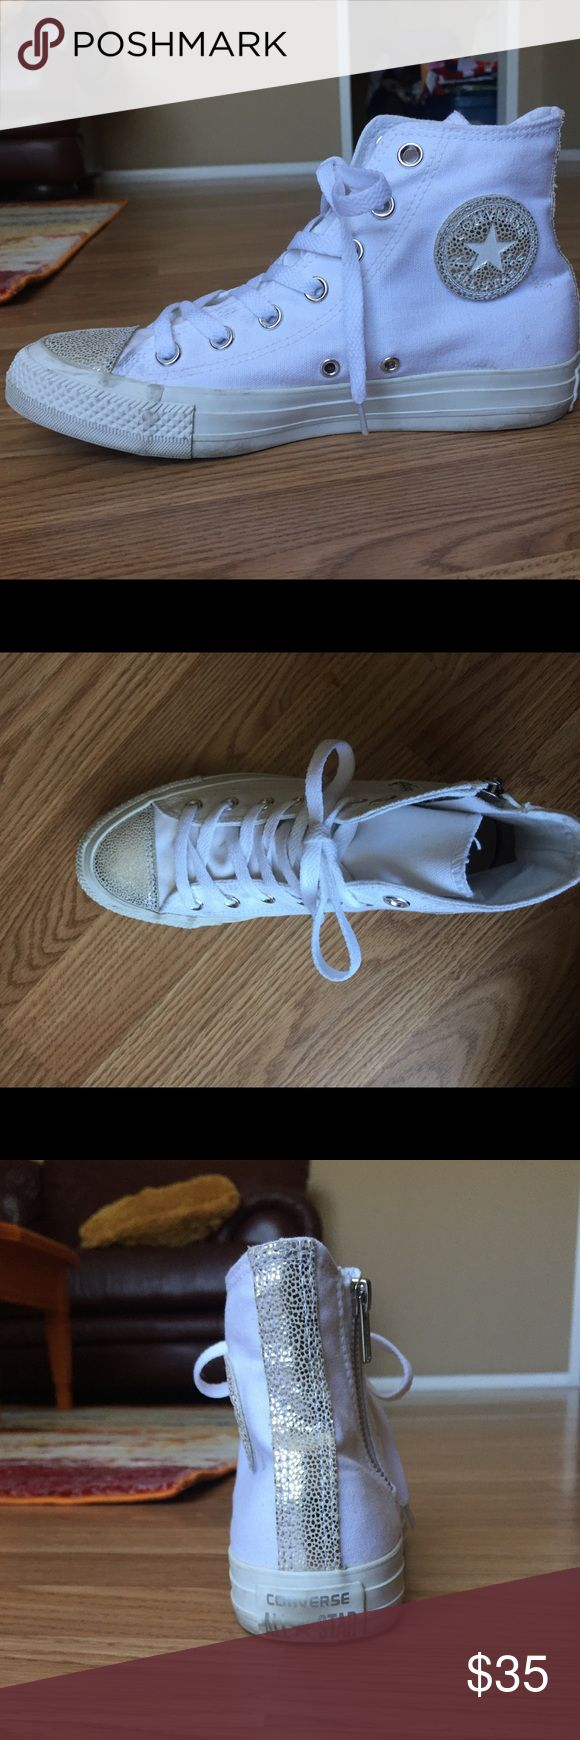 Silvery White Converse High Tops Converse High Top shoes in white with silver glittery toe and stripe on the back. New without tags. Never worn. Men's size 5. Women's size 7 or 7.5. Converse Shoes Sneakers